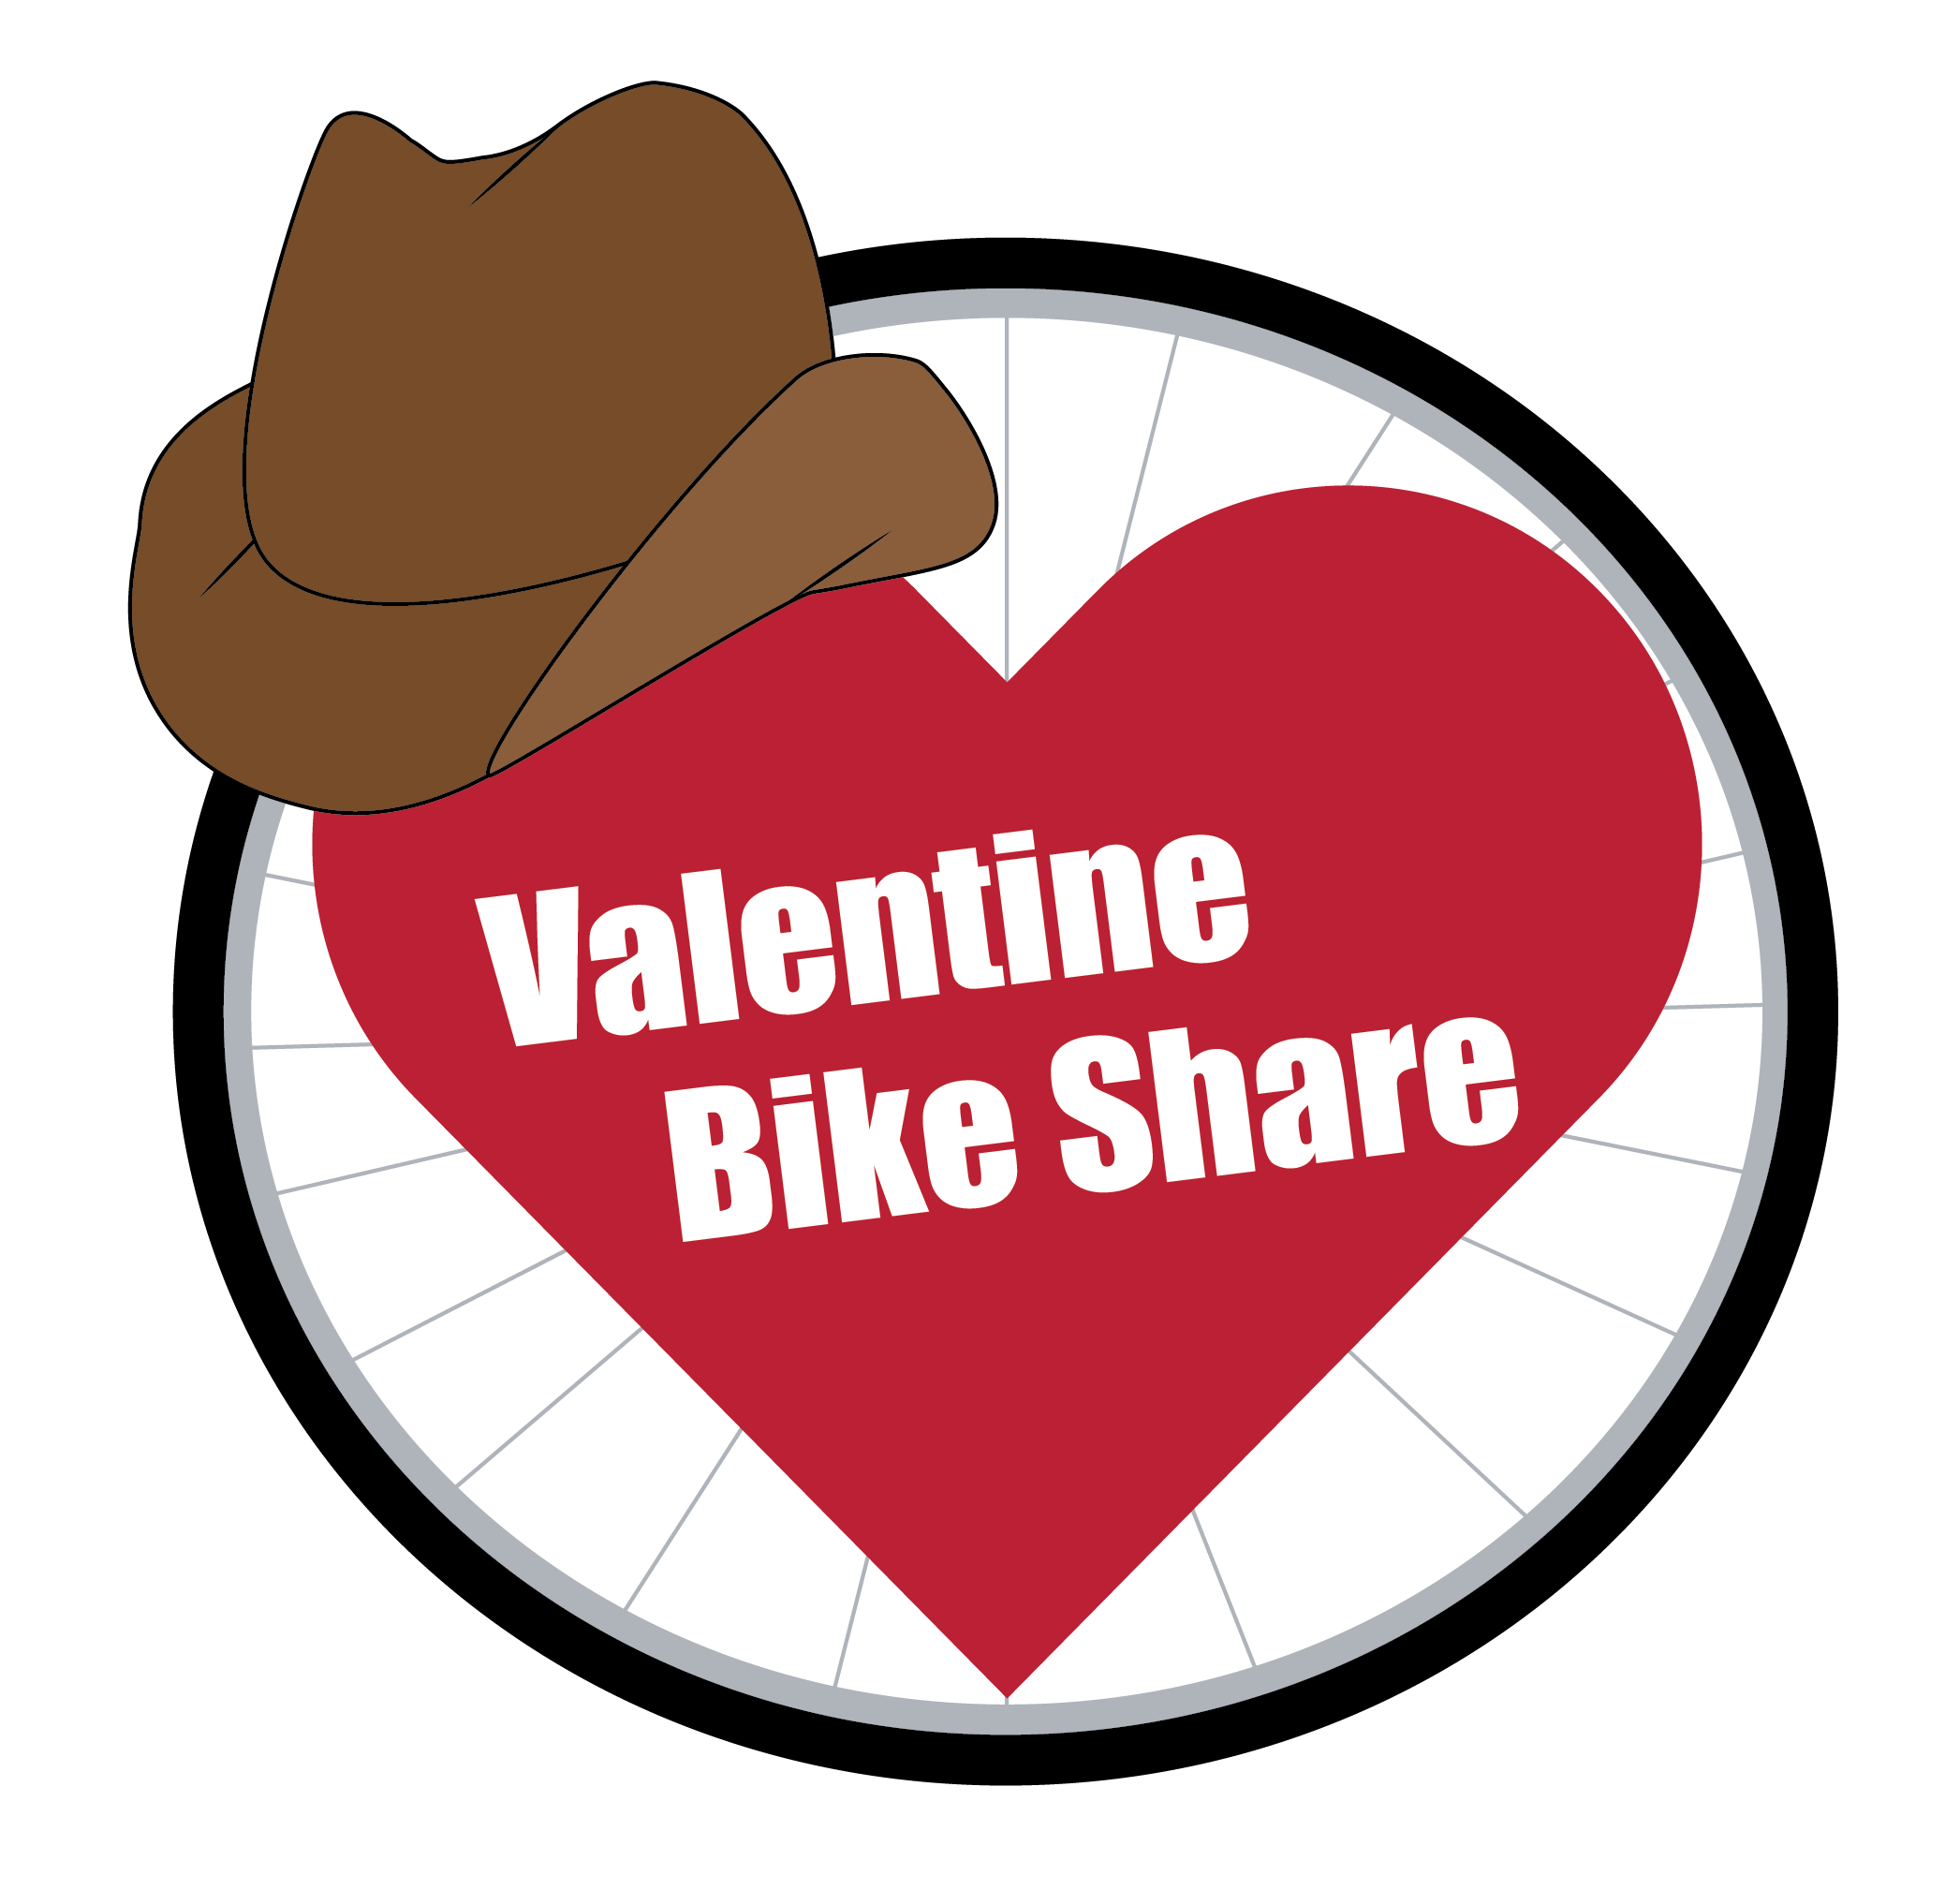 Valentine Bike Share